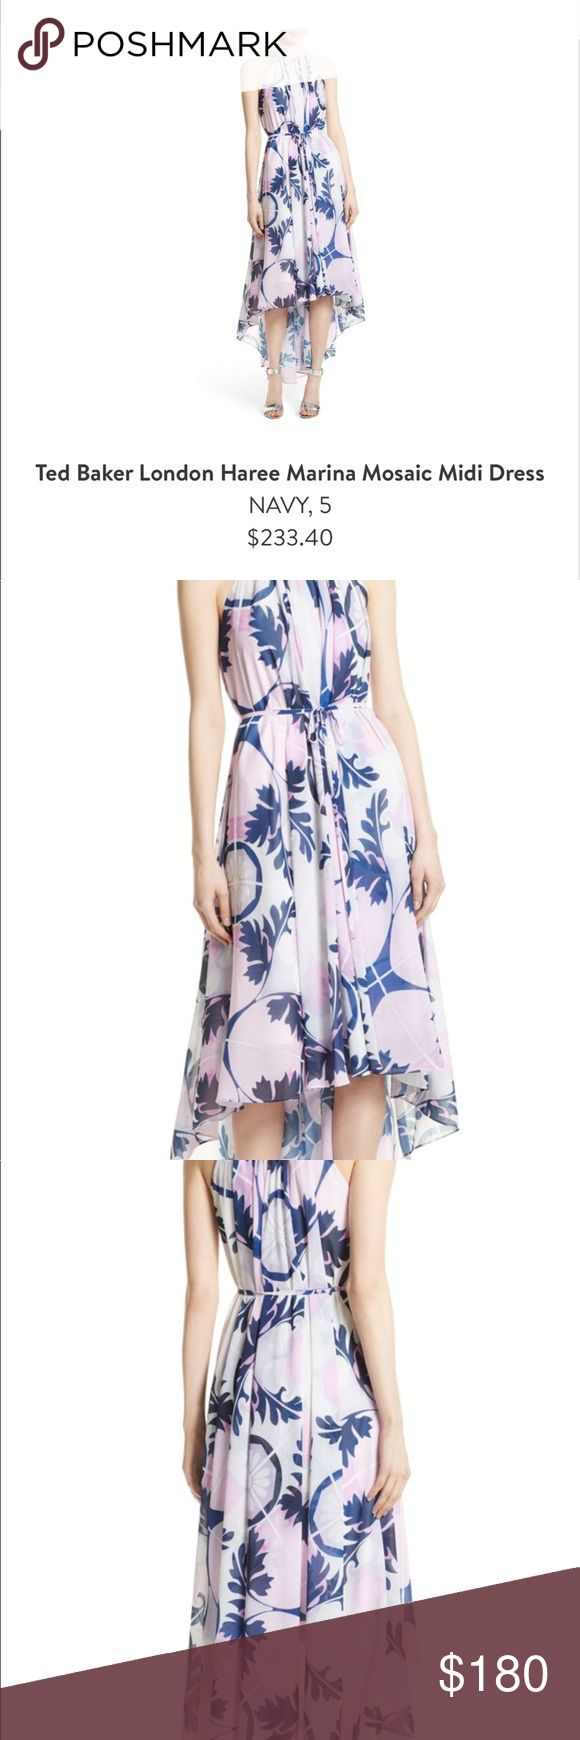 Ted Baker London Haree Marina Mosaic Dress Ted Baker London Haree Marina Mosaic Midi Dress NAVY, 5 Worn once!!! Ted Baker London Dresses